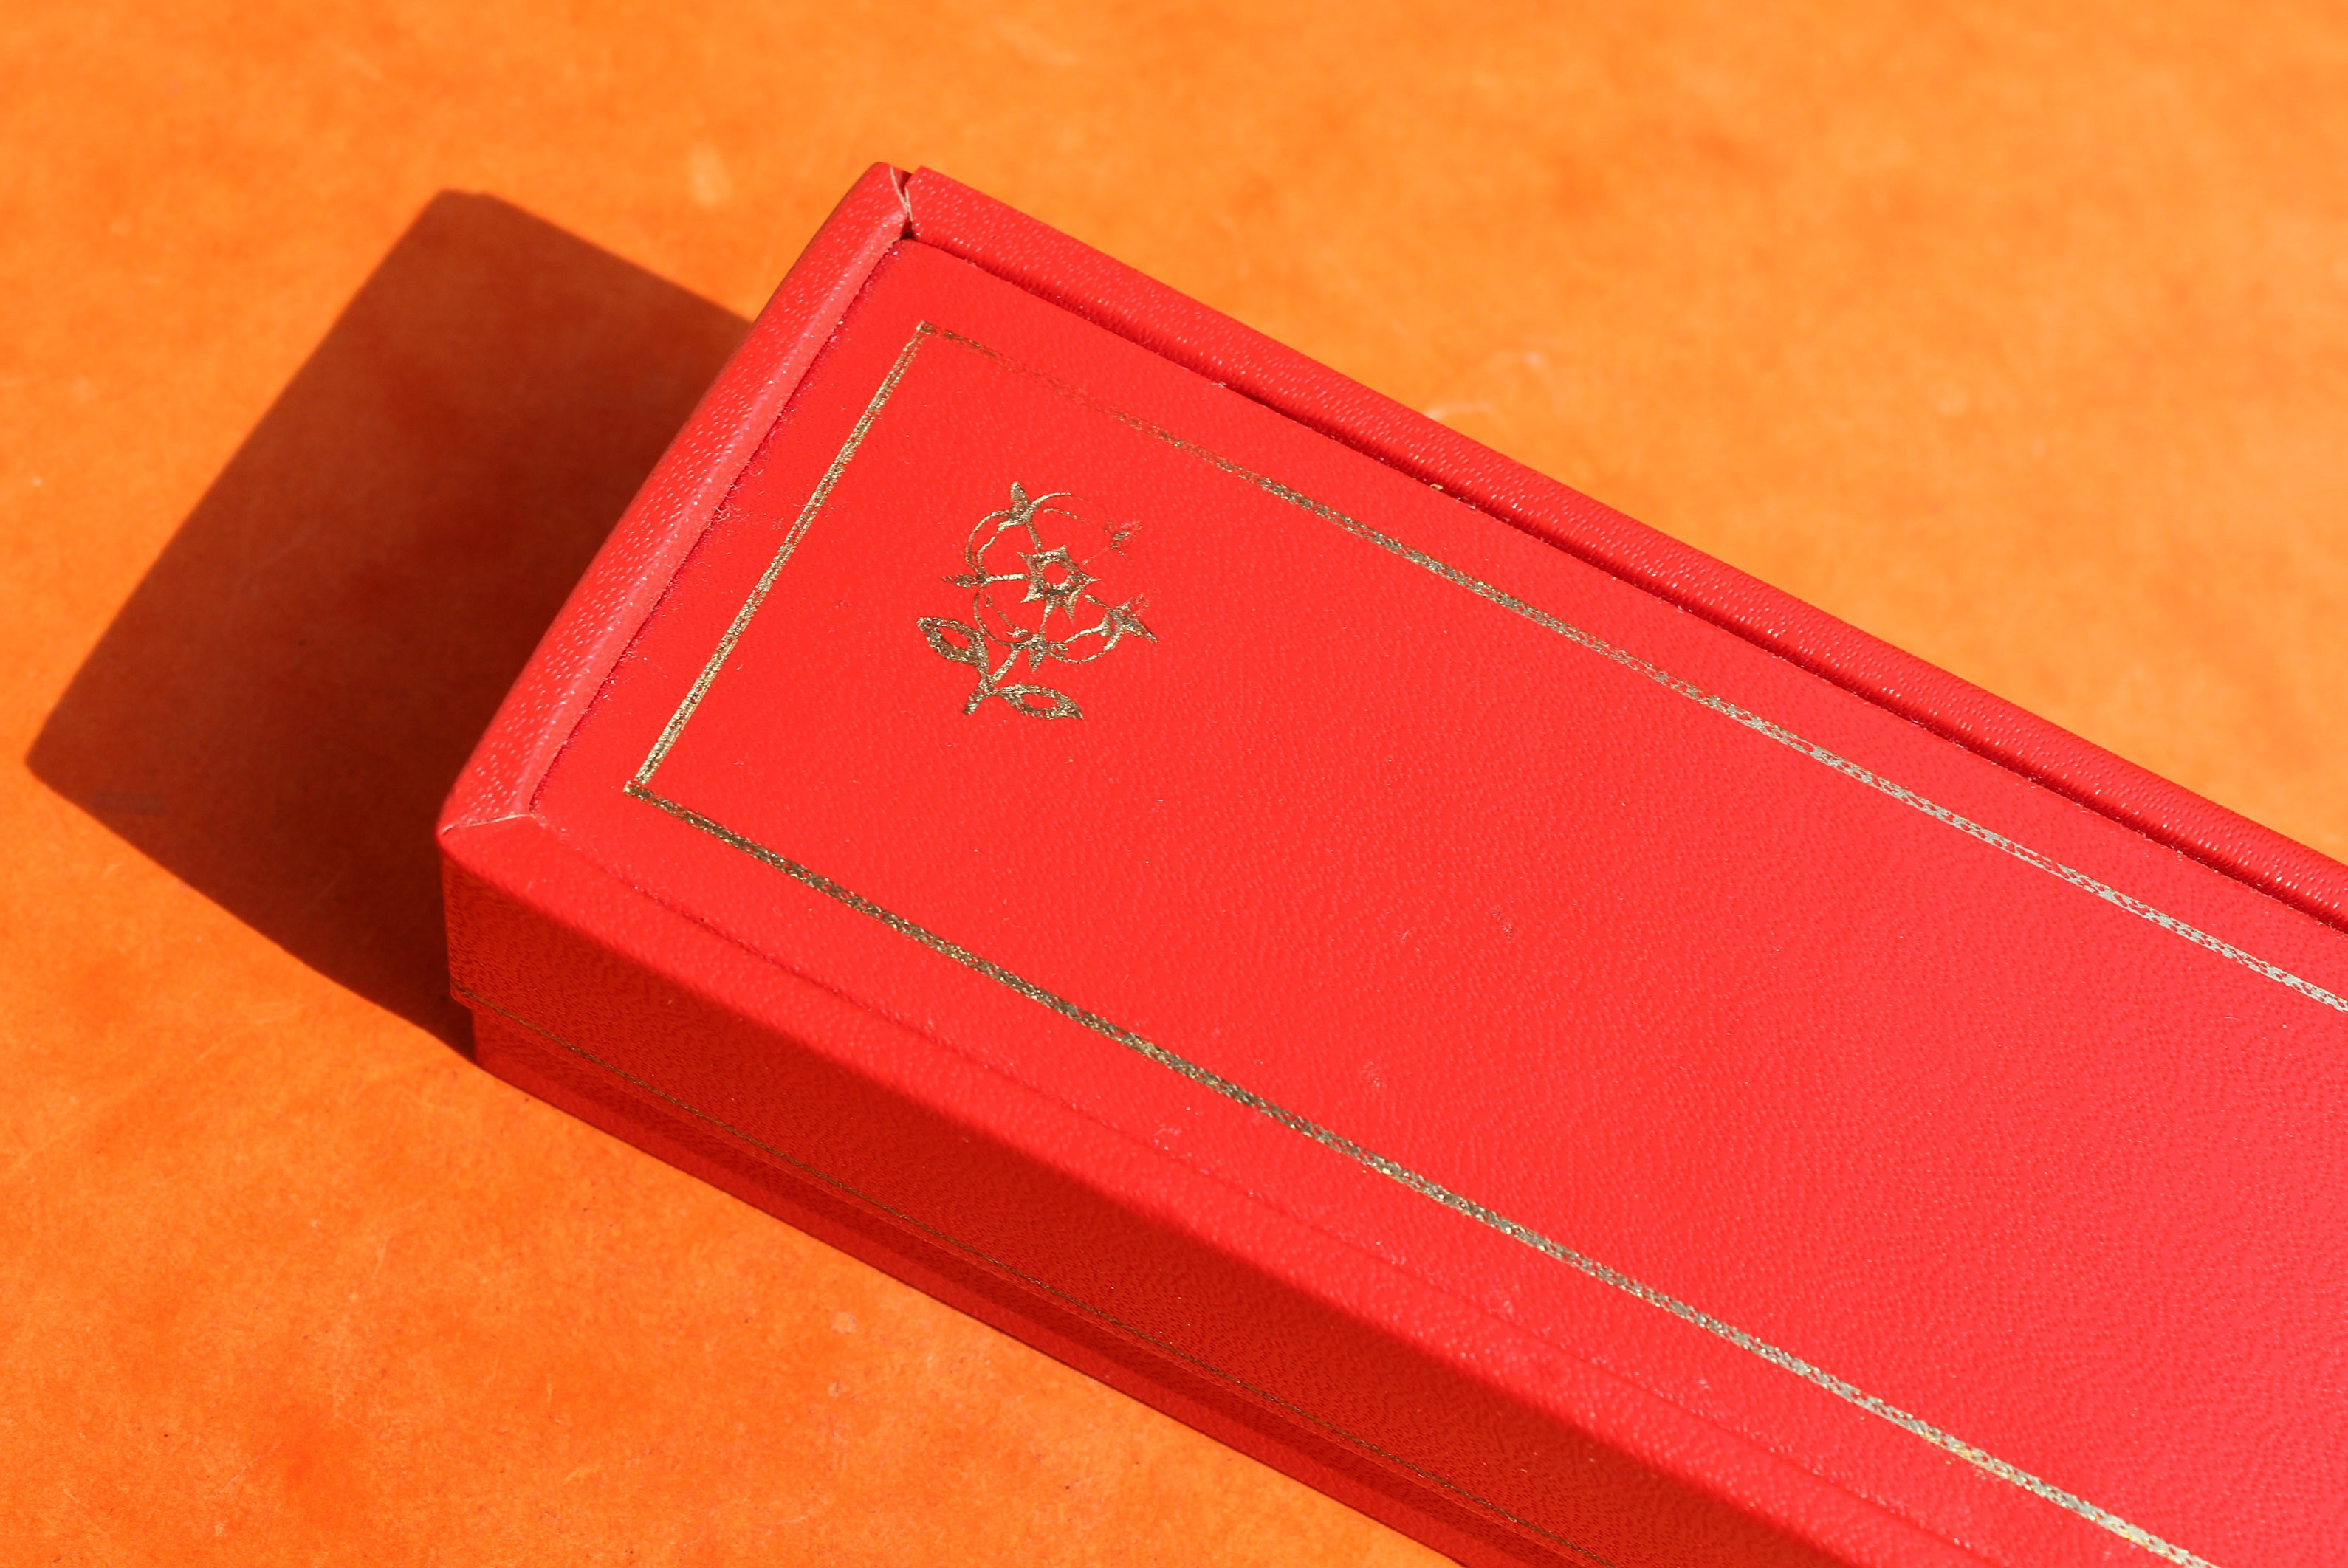 ROLEX TUDOR 50's VINTAGE BIG ROSE BOXSET RECTANGLE OBLONG COLLECTABLE INNER & OUTER WATCH BOX